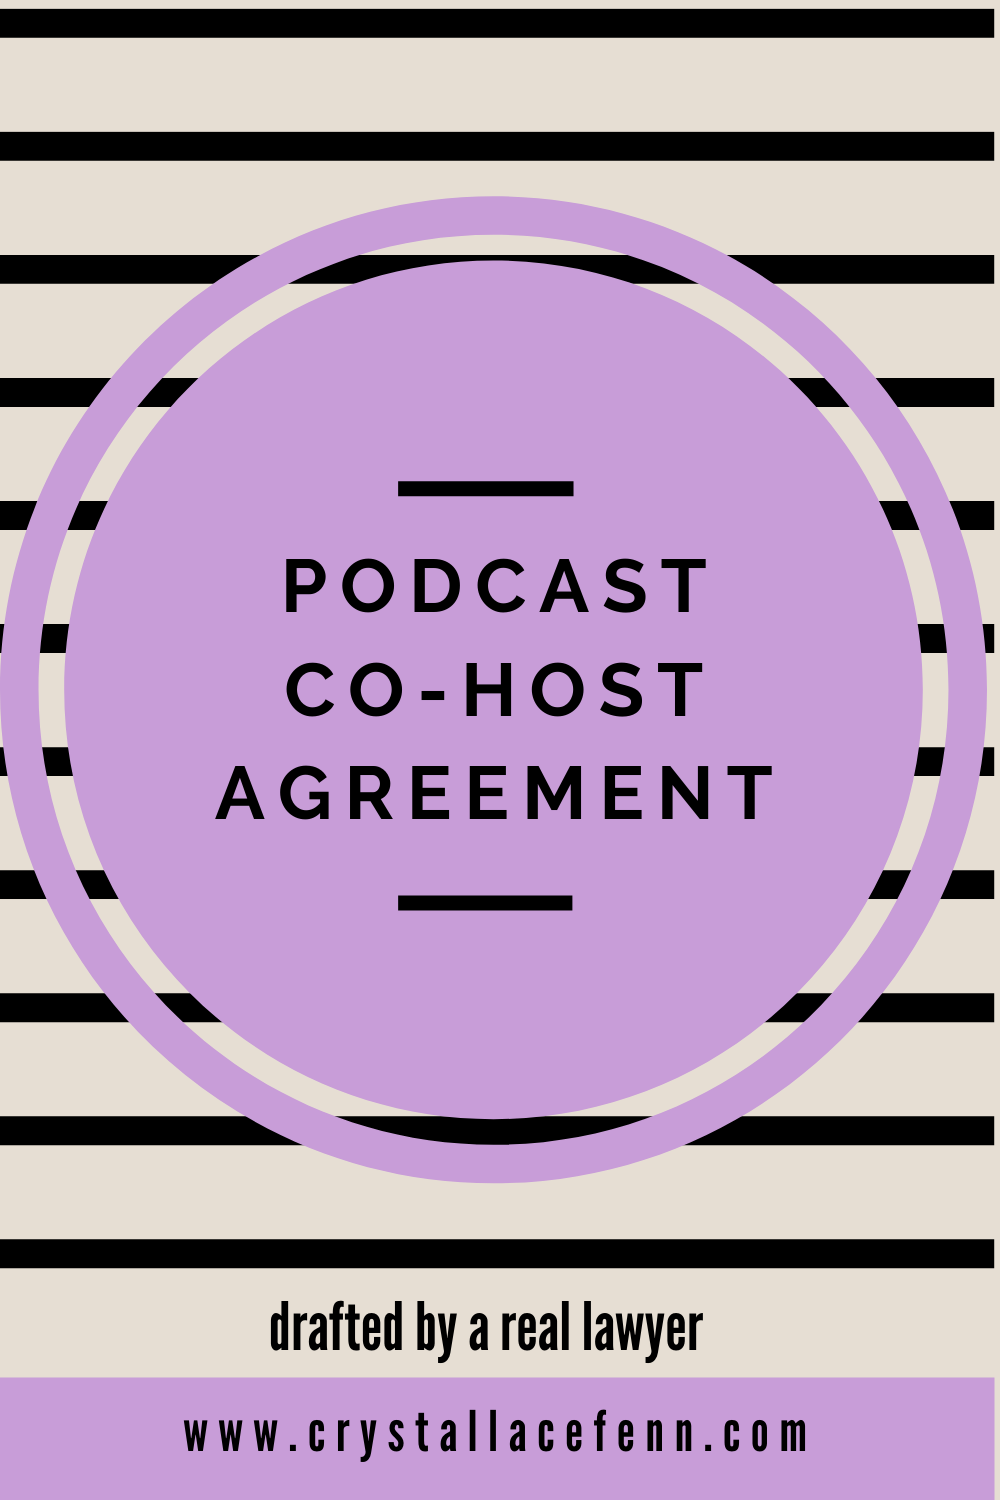 If you're looking to add a co-host to your podcast then you are going to need this agreement. Invest in protecting your brand and your business with this Podcast Co-Host Agreement. Drafted by a real lawyer and easy to use, this agreement formalizes and details the terms of your co-host arrangement Don't enter into a partnership without it!